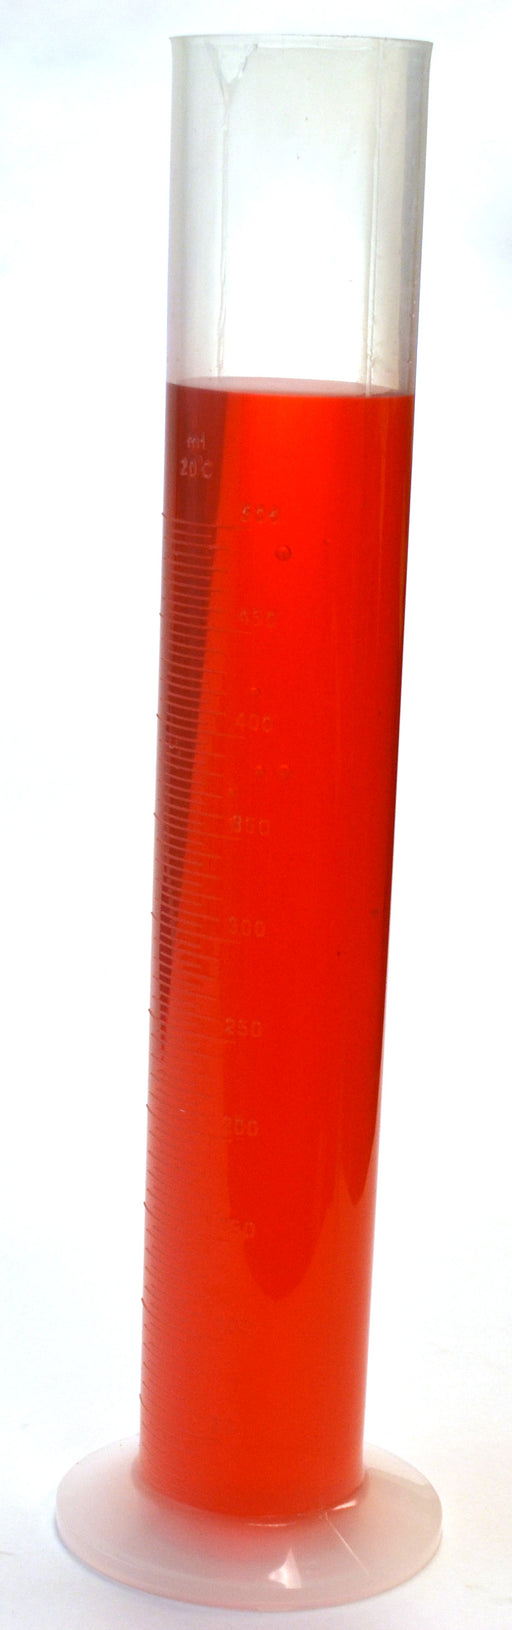 500mL Graduated Cylinder, Polypropylene, 5mL Graduations